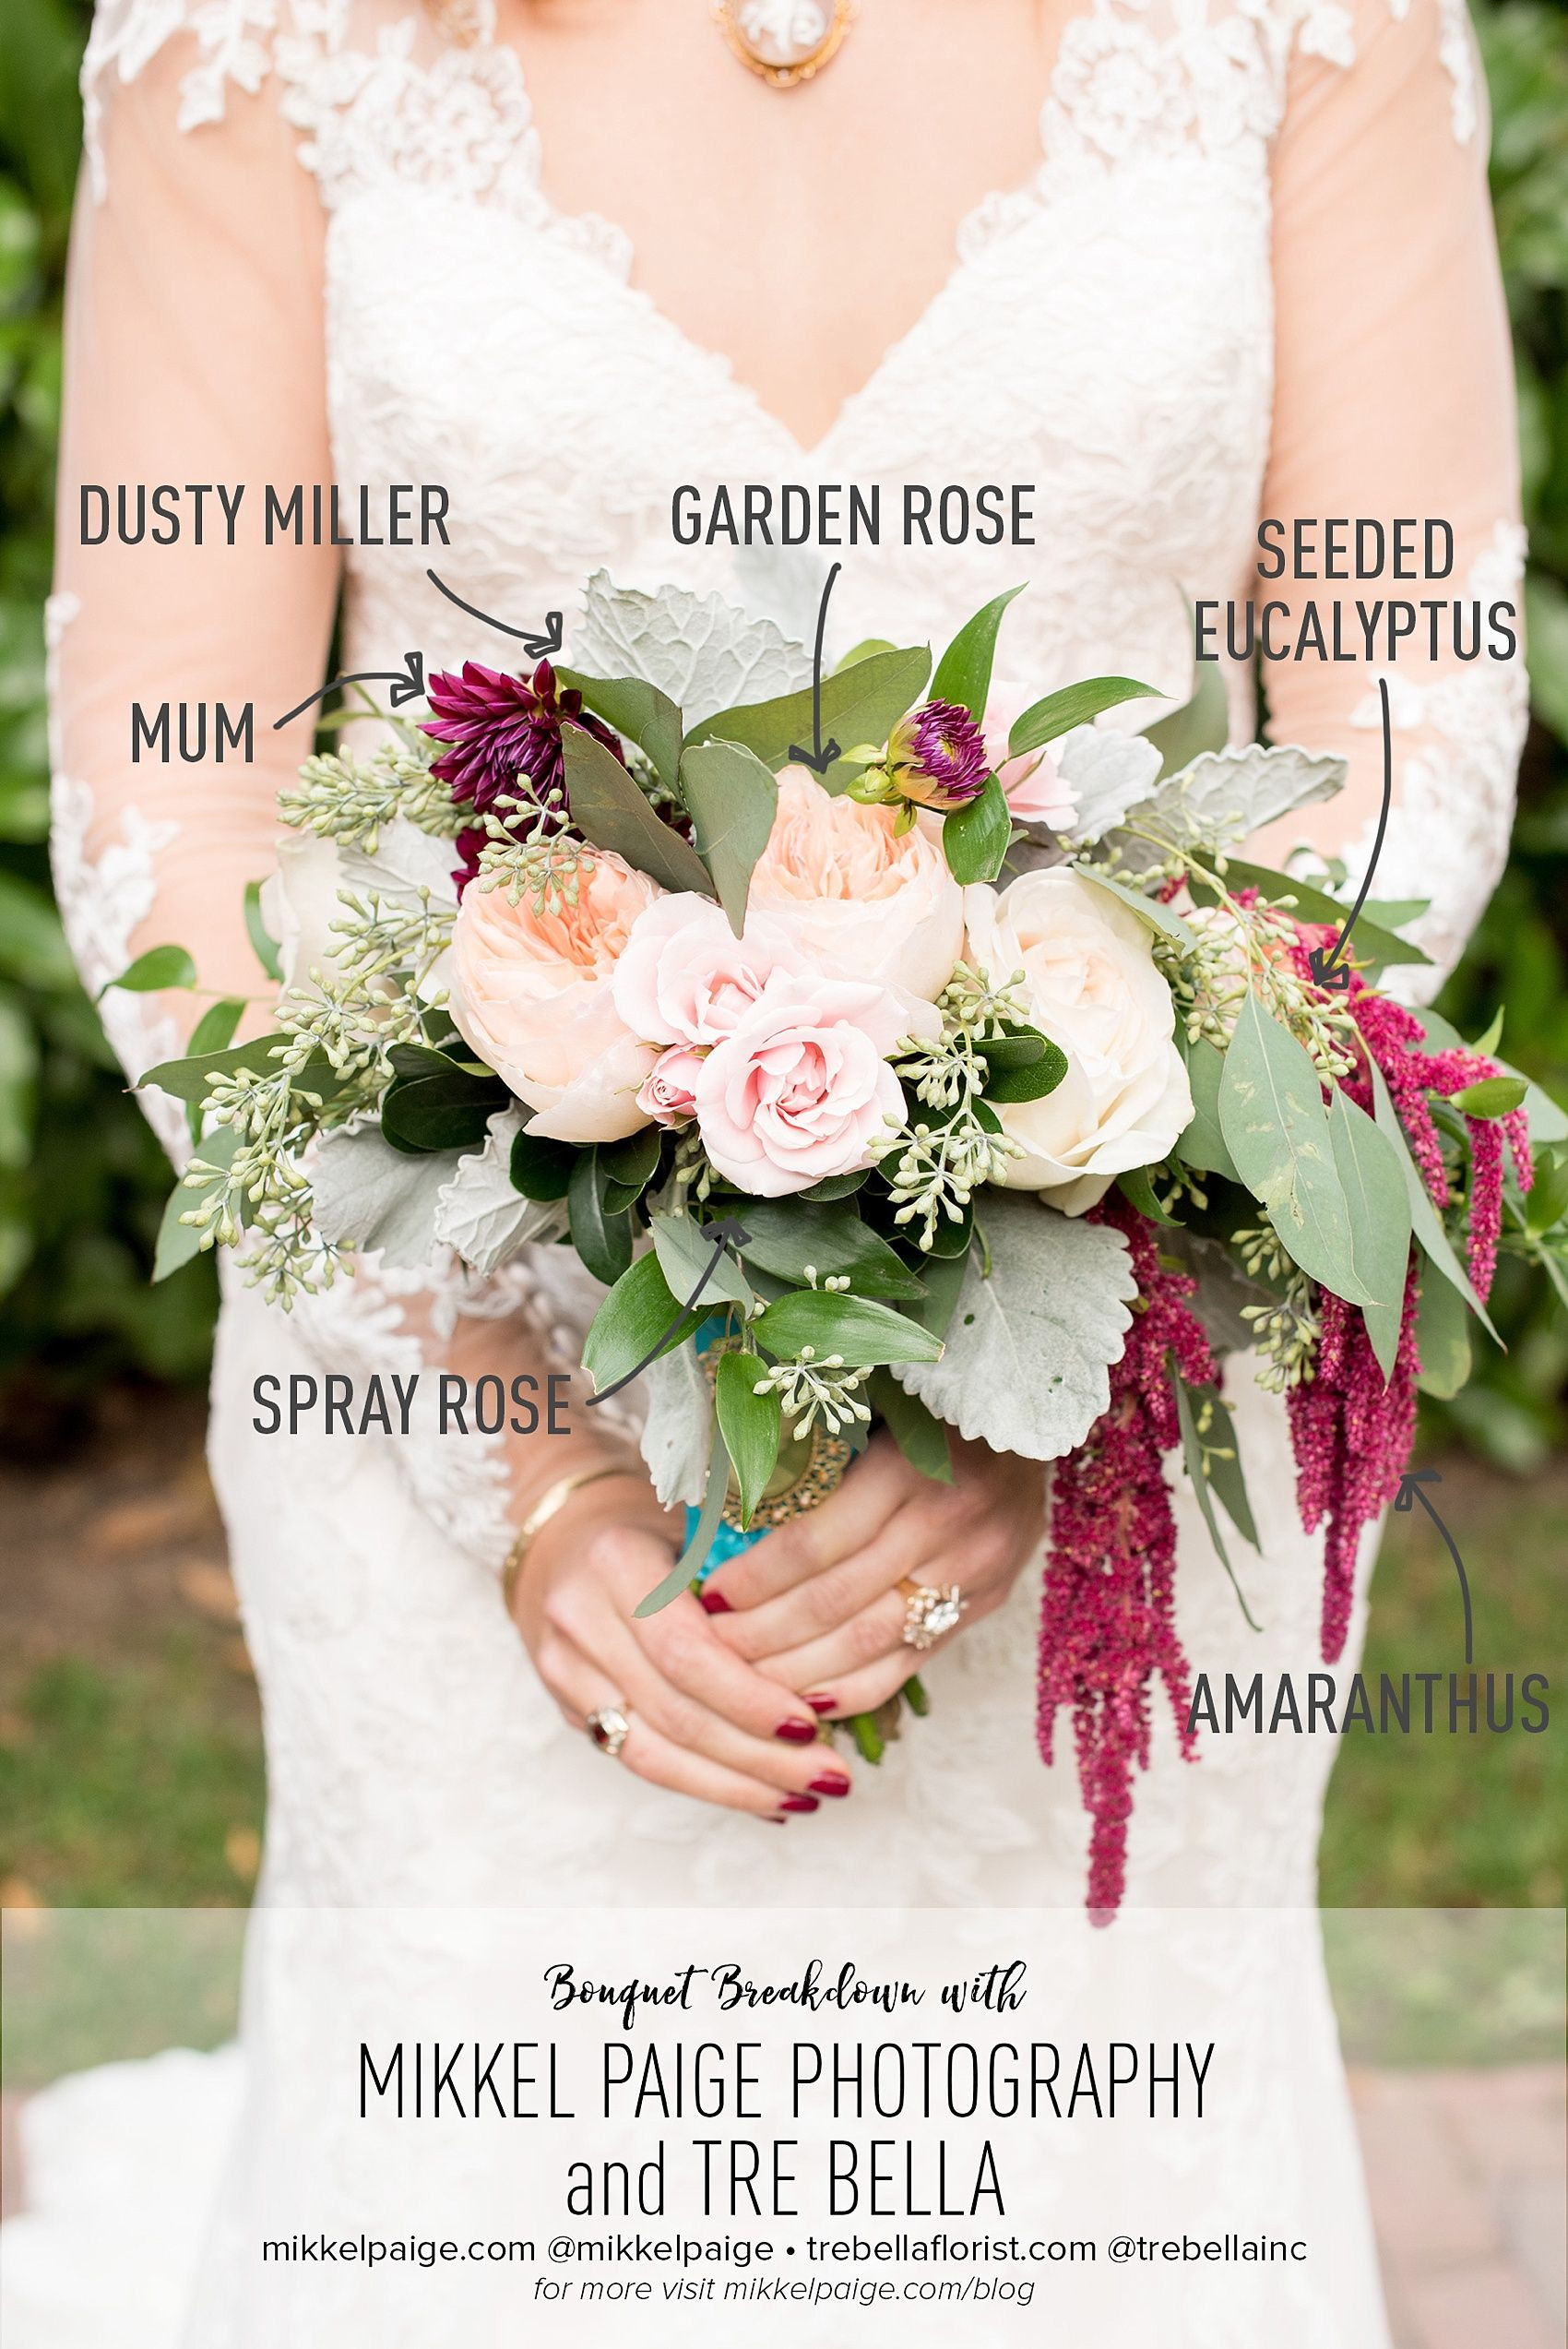 Mikkel Paige graphy bouquet breakdown of bridal flowers with Tre Bella in Durham for a wedding at The Carolina Inn Pink Garden Roses red Amaranthus